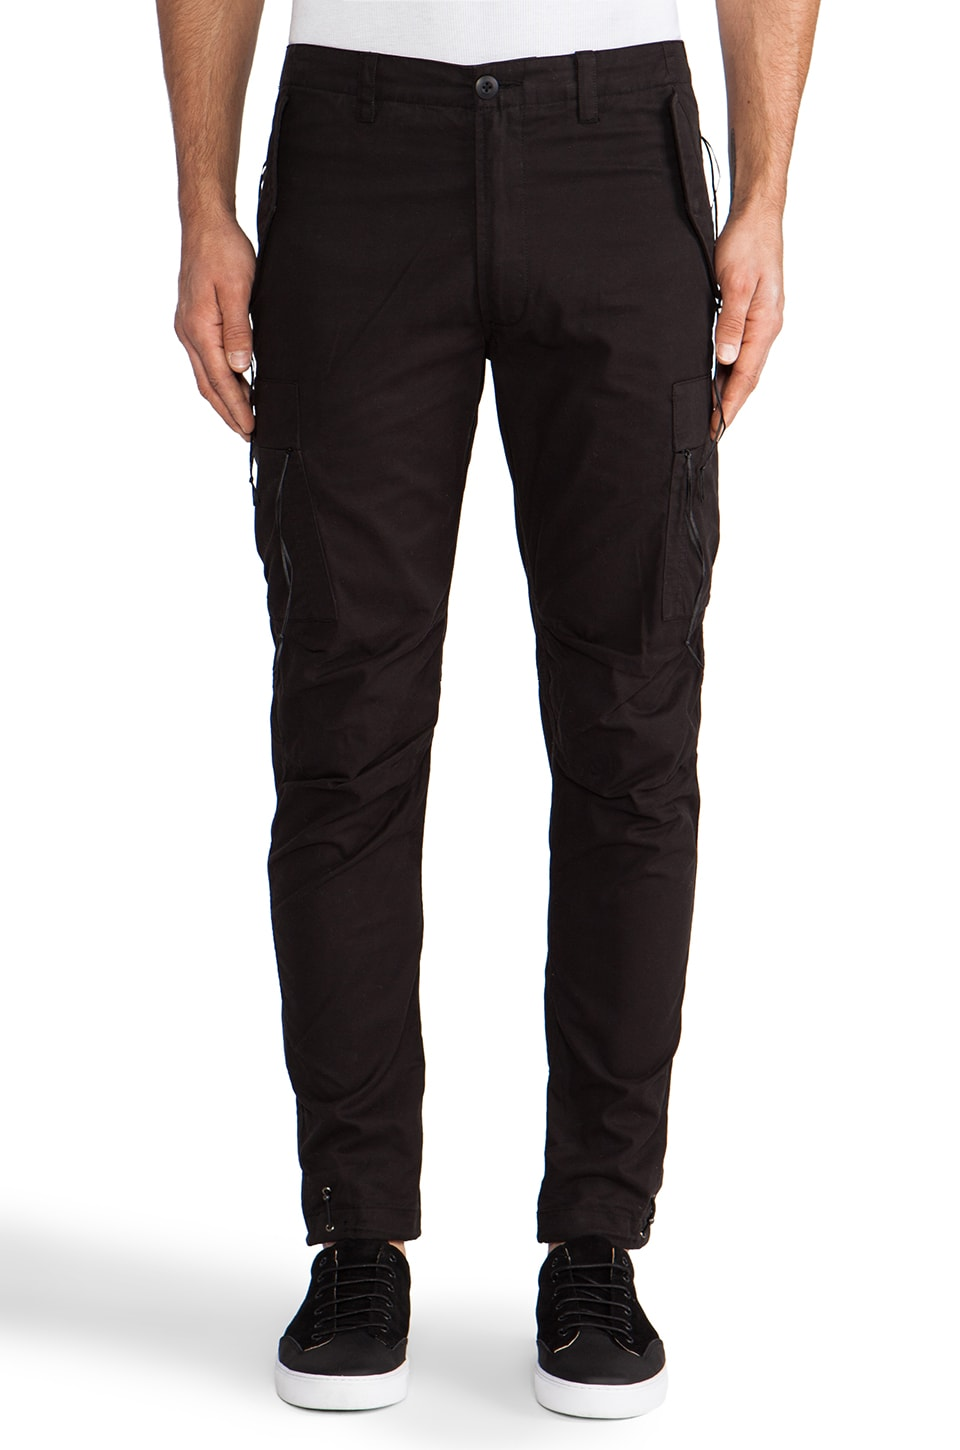 Maharishi Custom MA Cargo Pant in Black